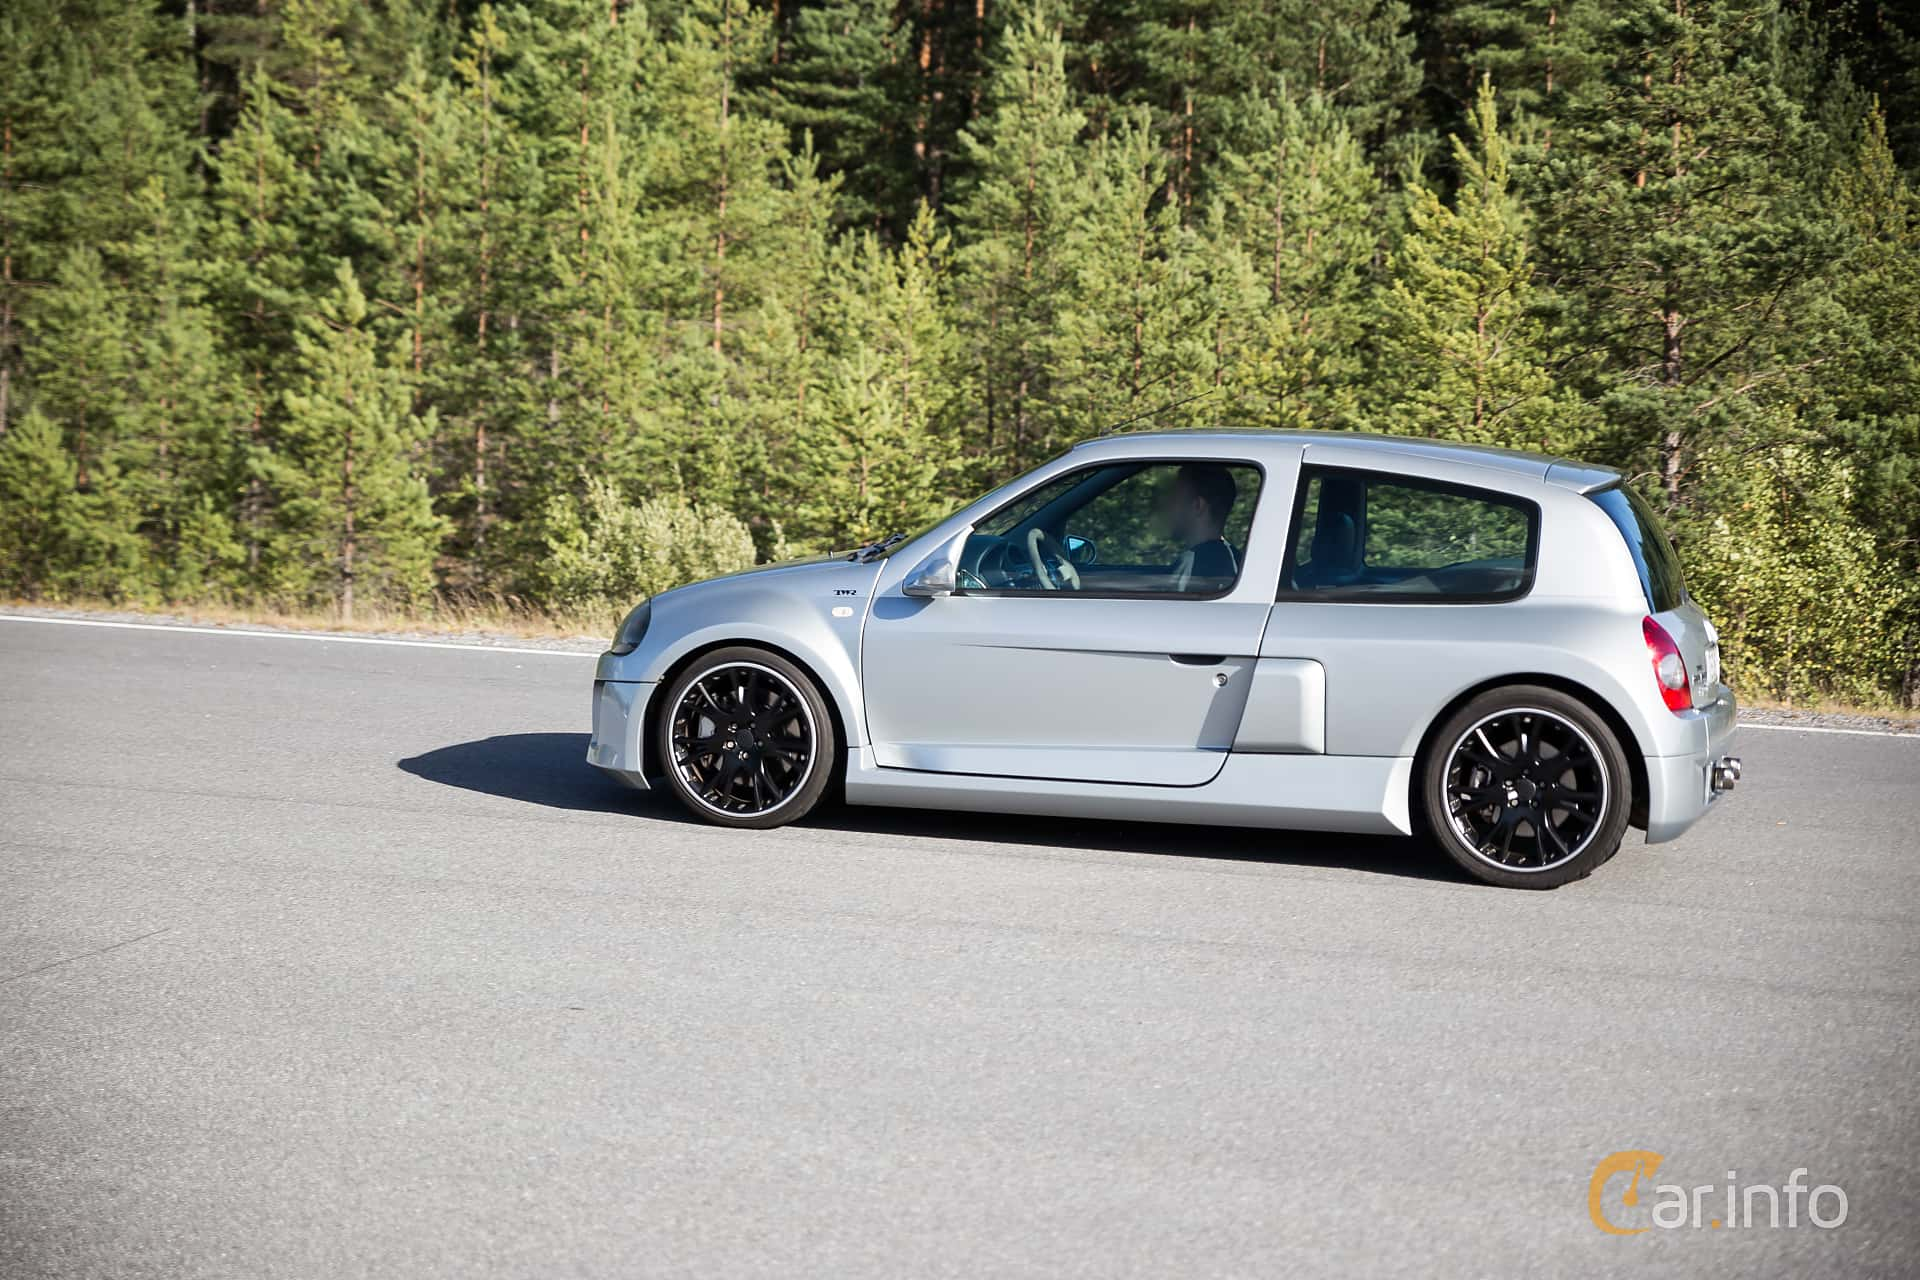 3 Images Of Renault Clio Rs 3 0 V6 Manual 226hp 2002 By Marcusliedholm